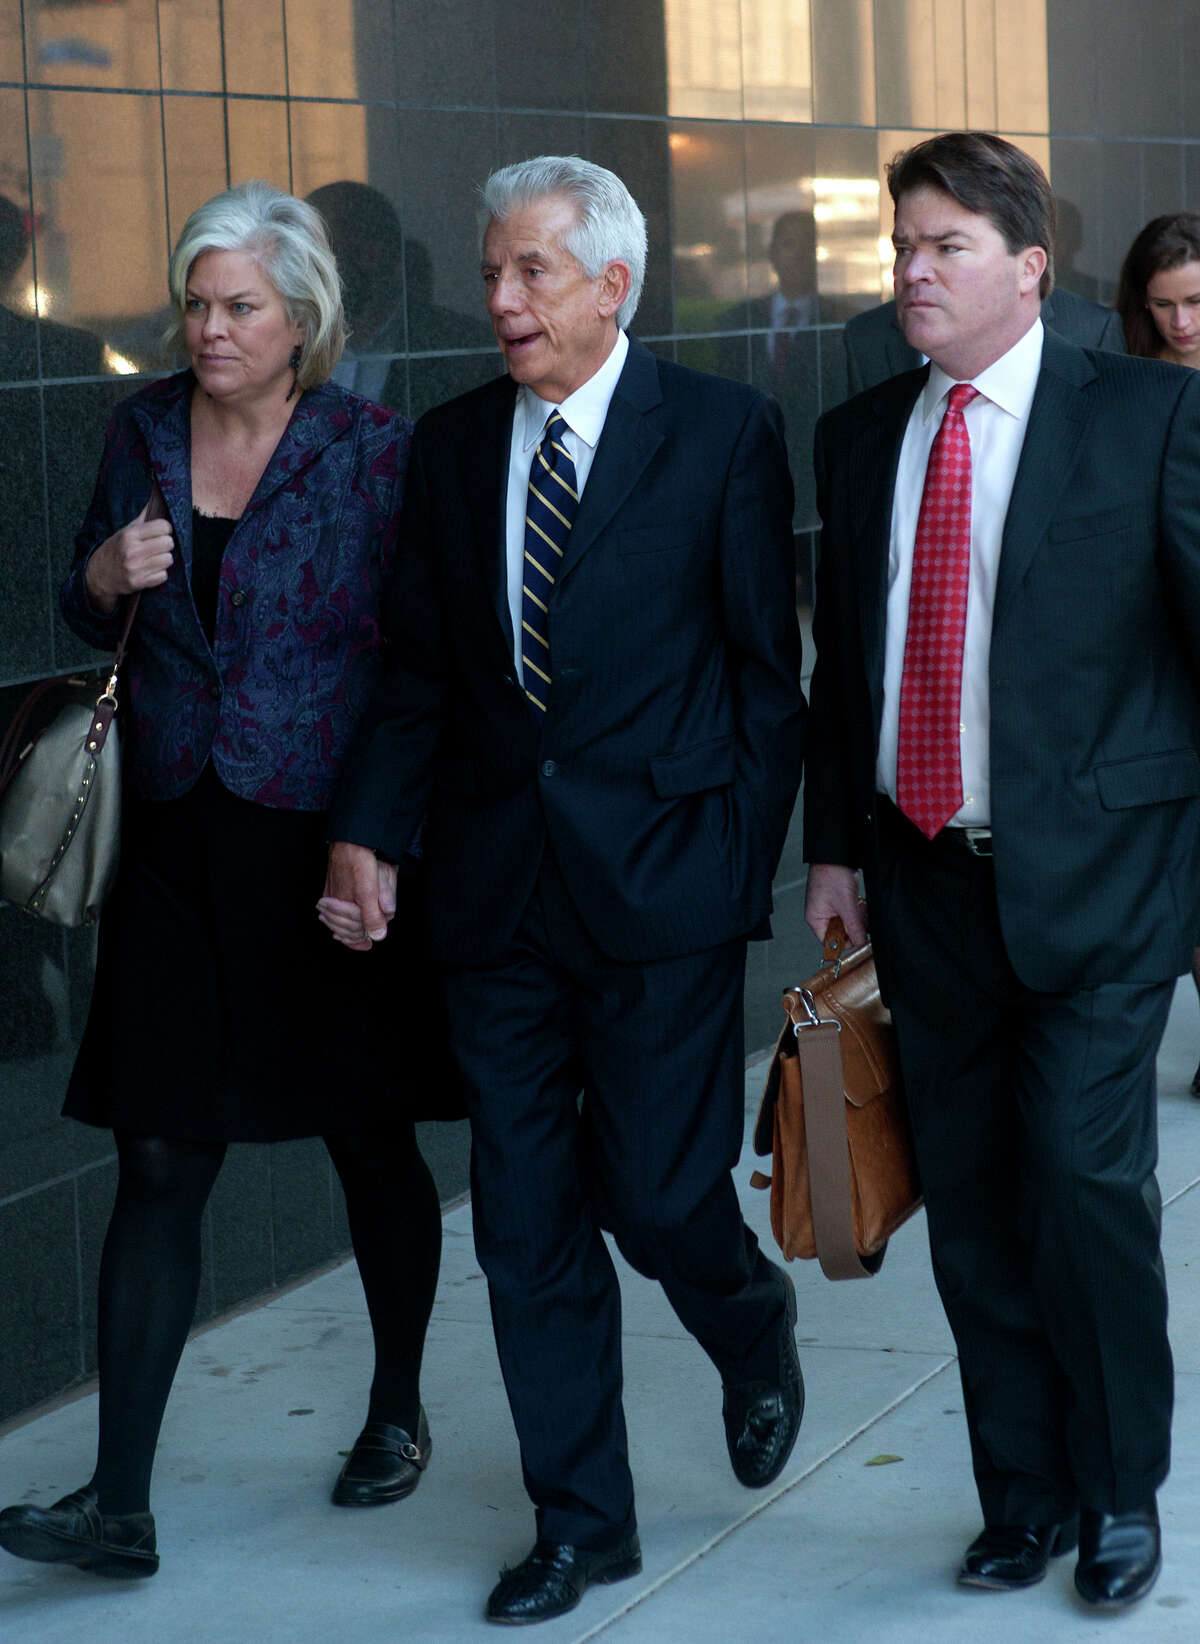 James Davis, center, enters court Tuesday for sentencing with his wife, Laurie, and attorney David Finn. He was sentenced to five years in prison, followed by three years of probation. Davis told a judge,